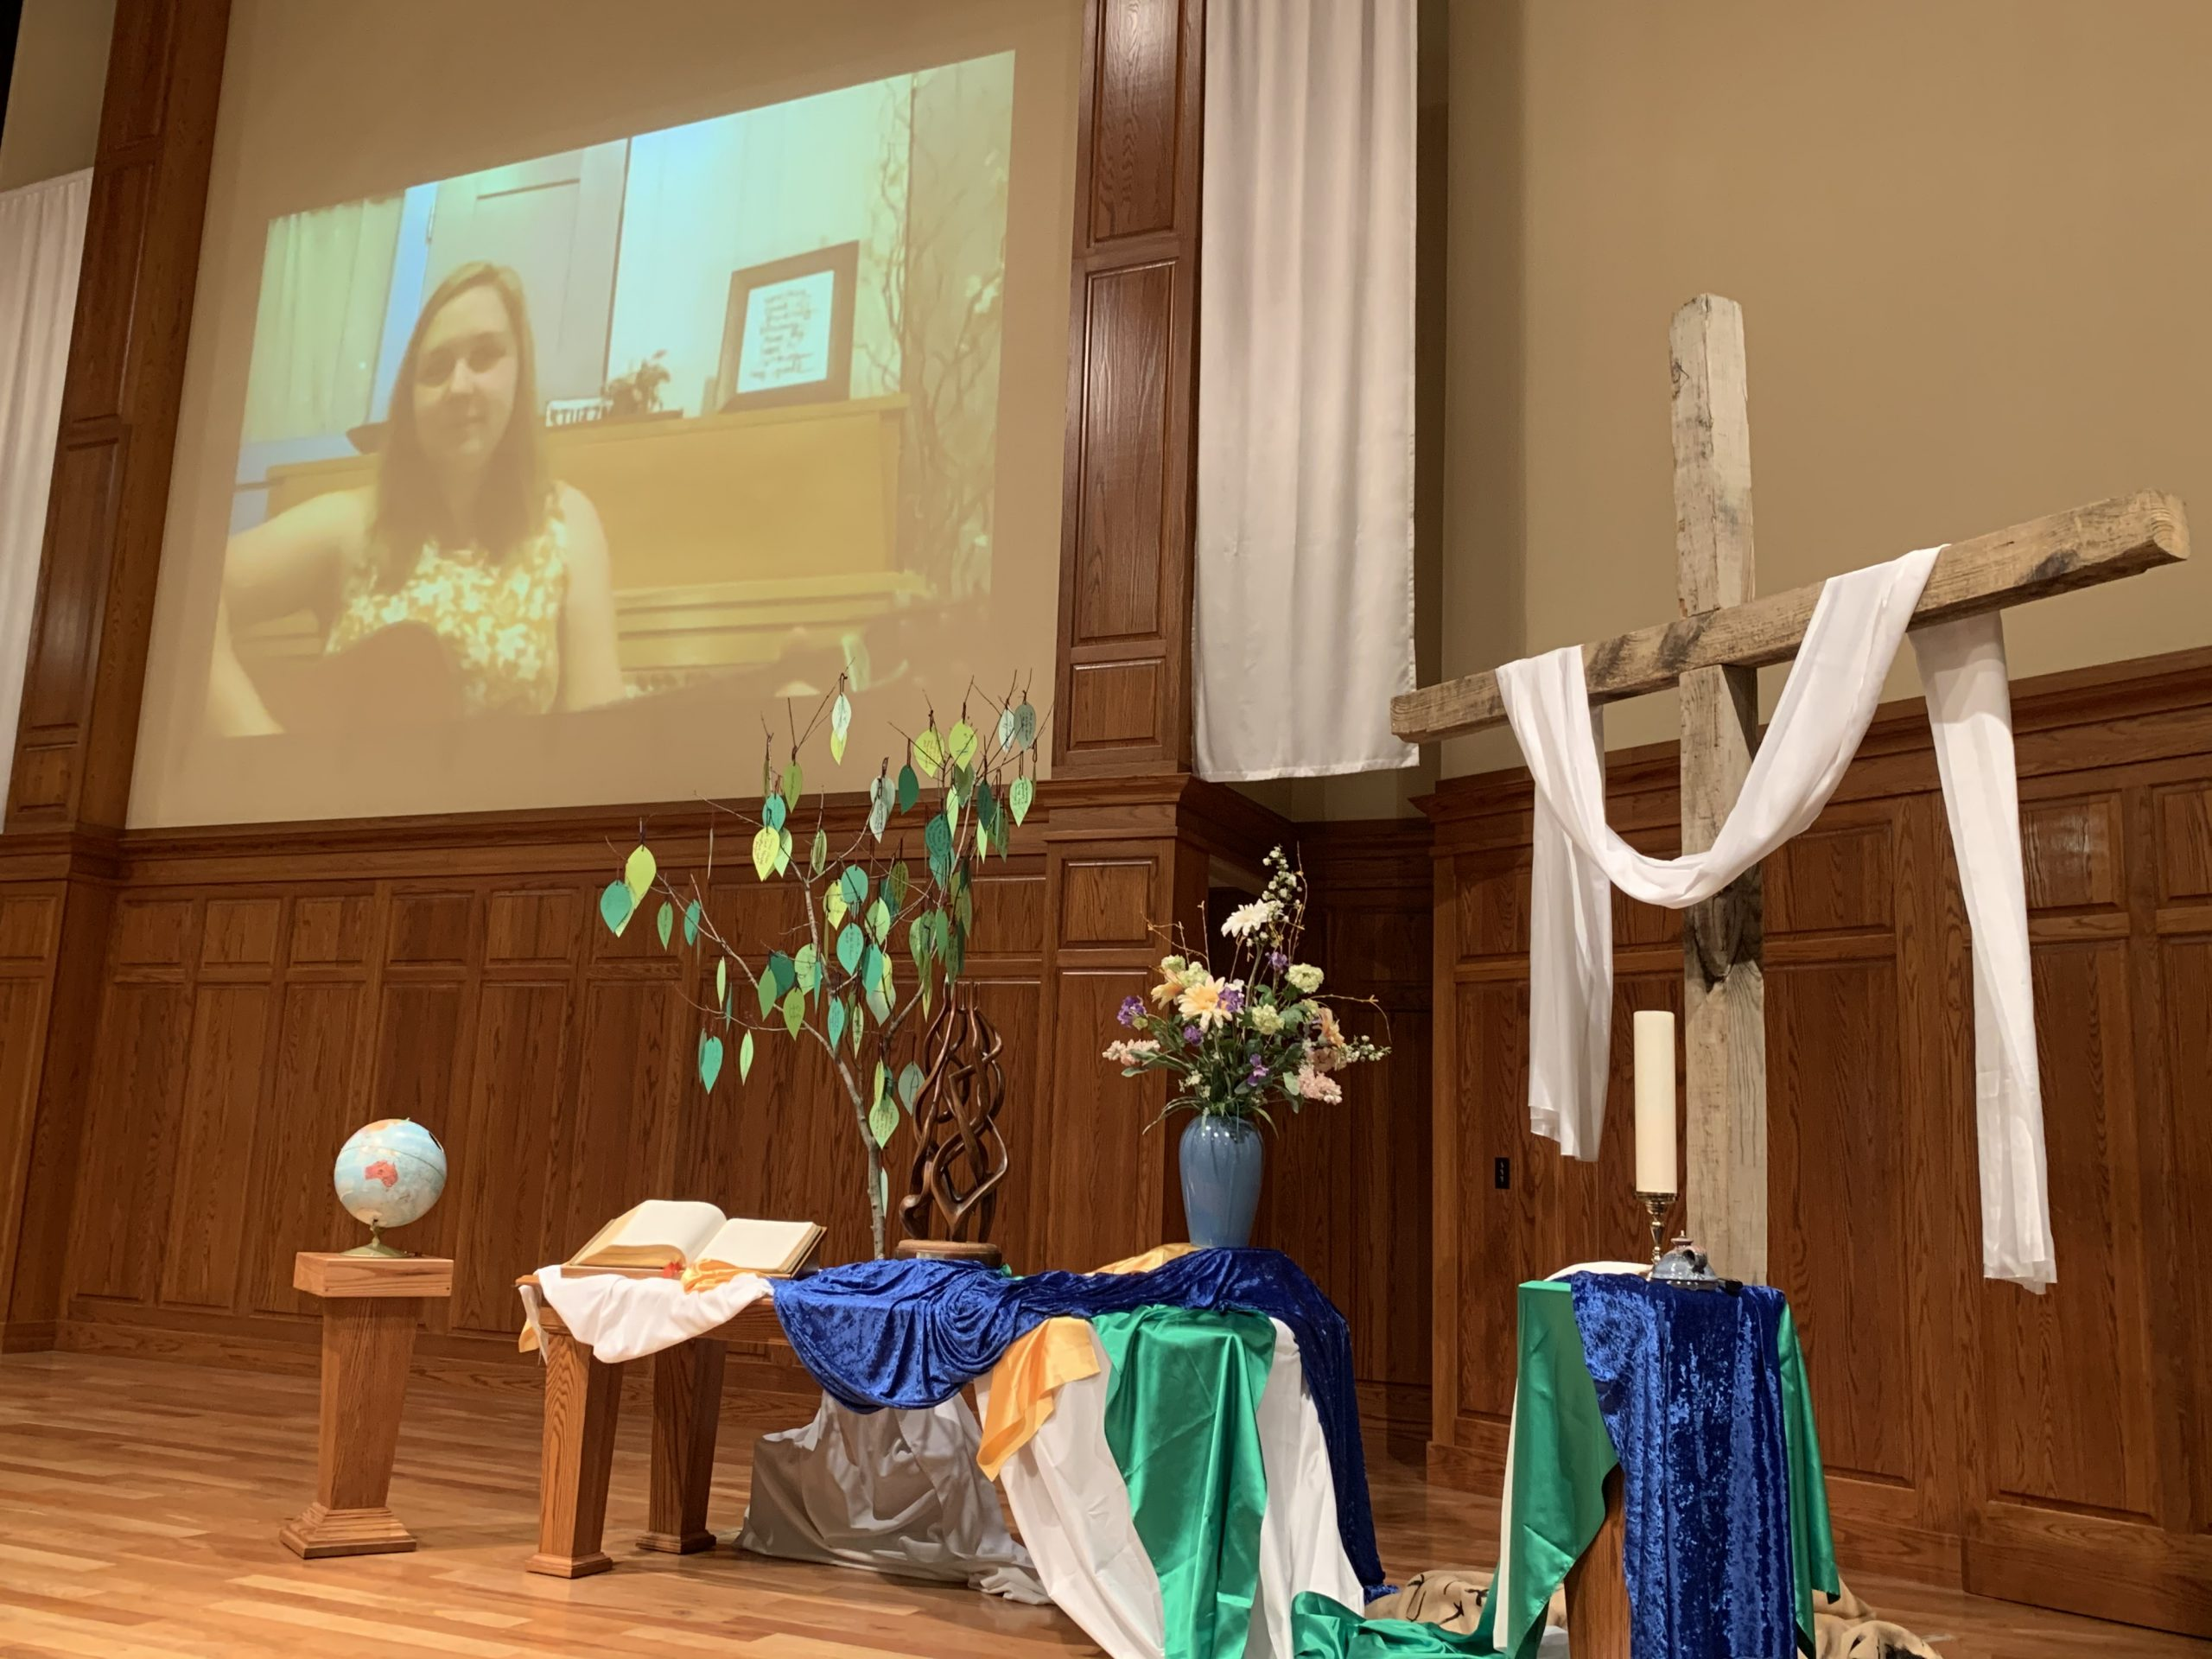 Local church finds new ways to connect with each other